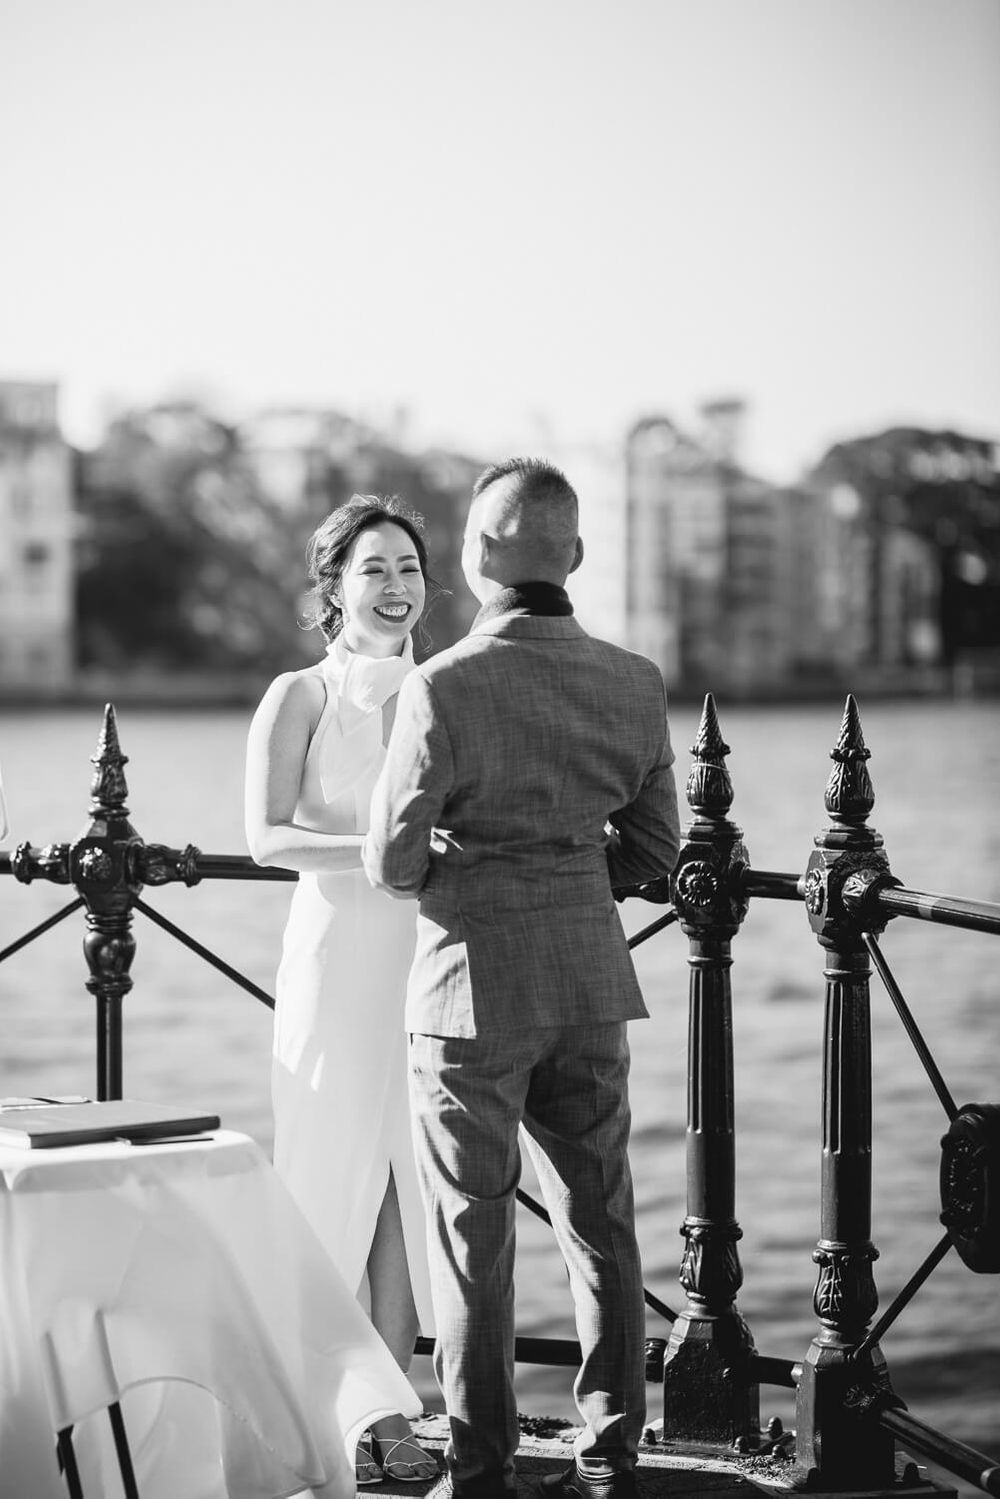 a smiling bride during wedding ceremony at Sydney Harbour